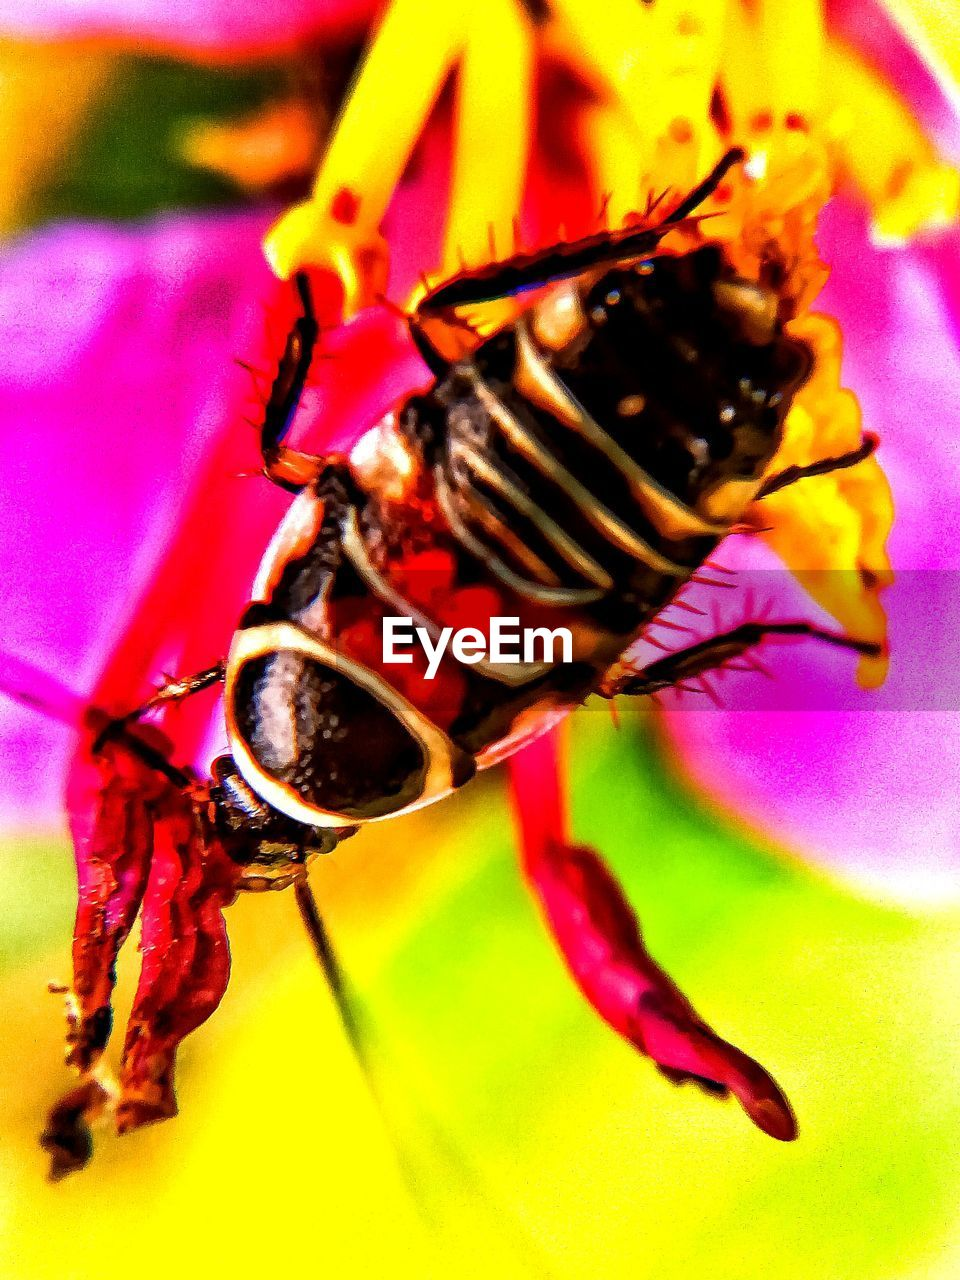 insect, animal themes, close-up, animals in the wild, one animal, no people, focus on foreground, animal wildlife, outdoors, nature, day